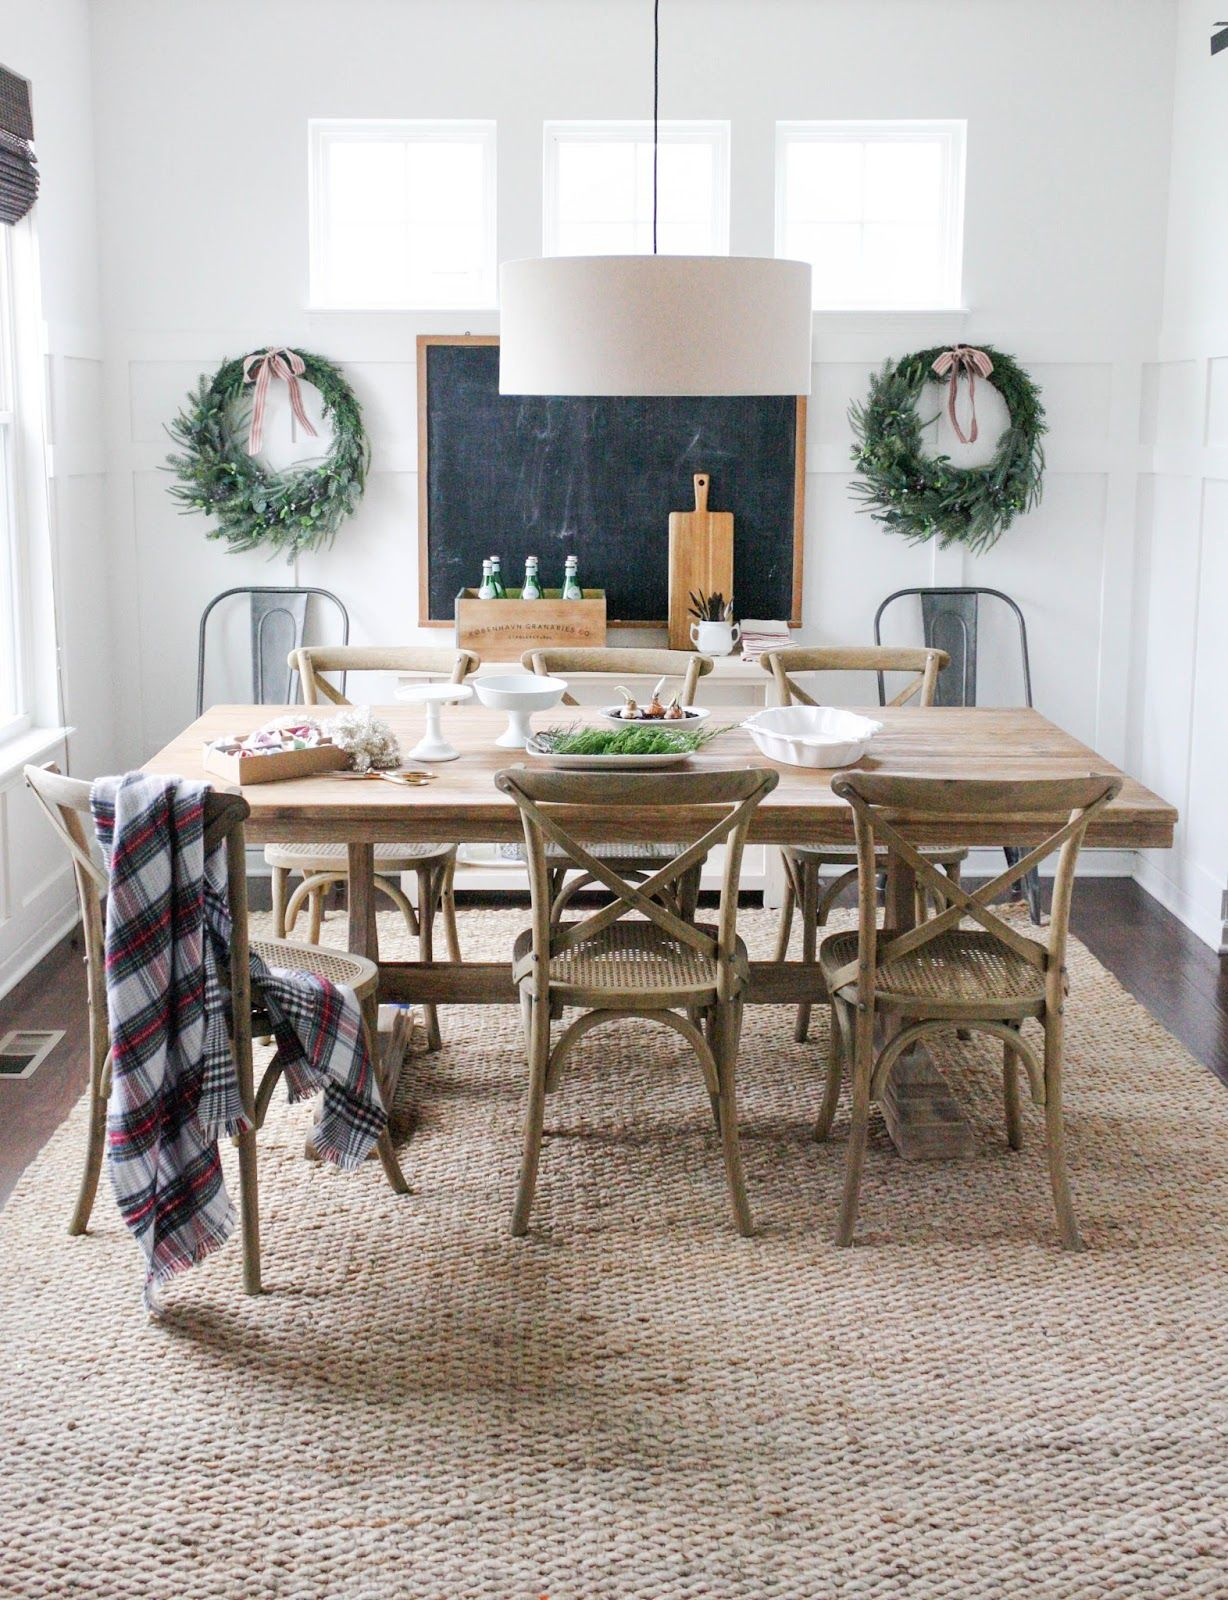 Jute rug from Rugs USA; Dining table from World Market; Chairs from ...